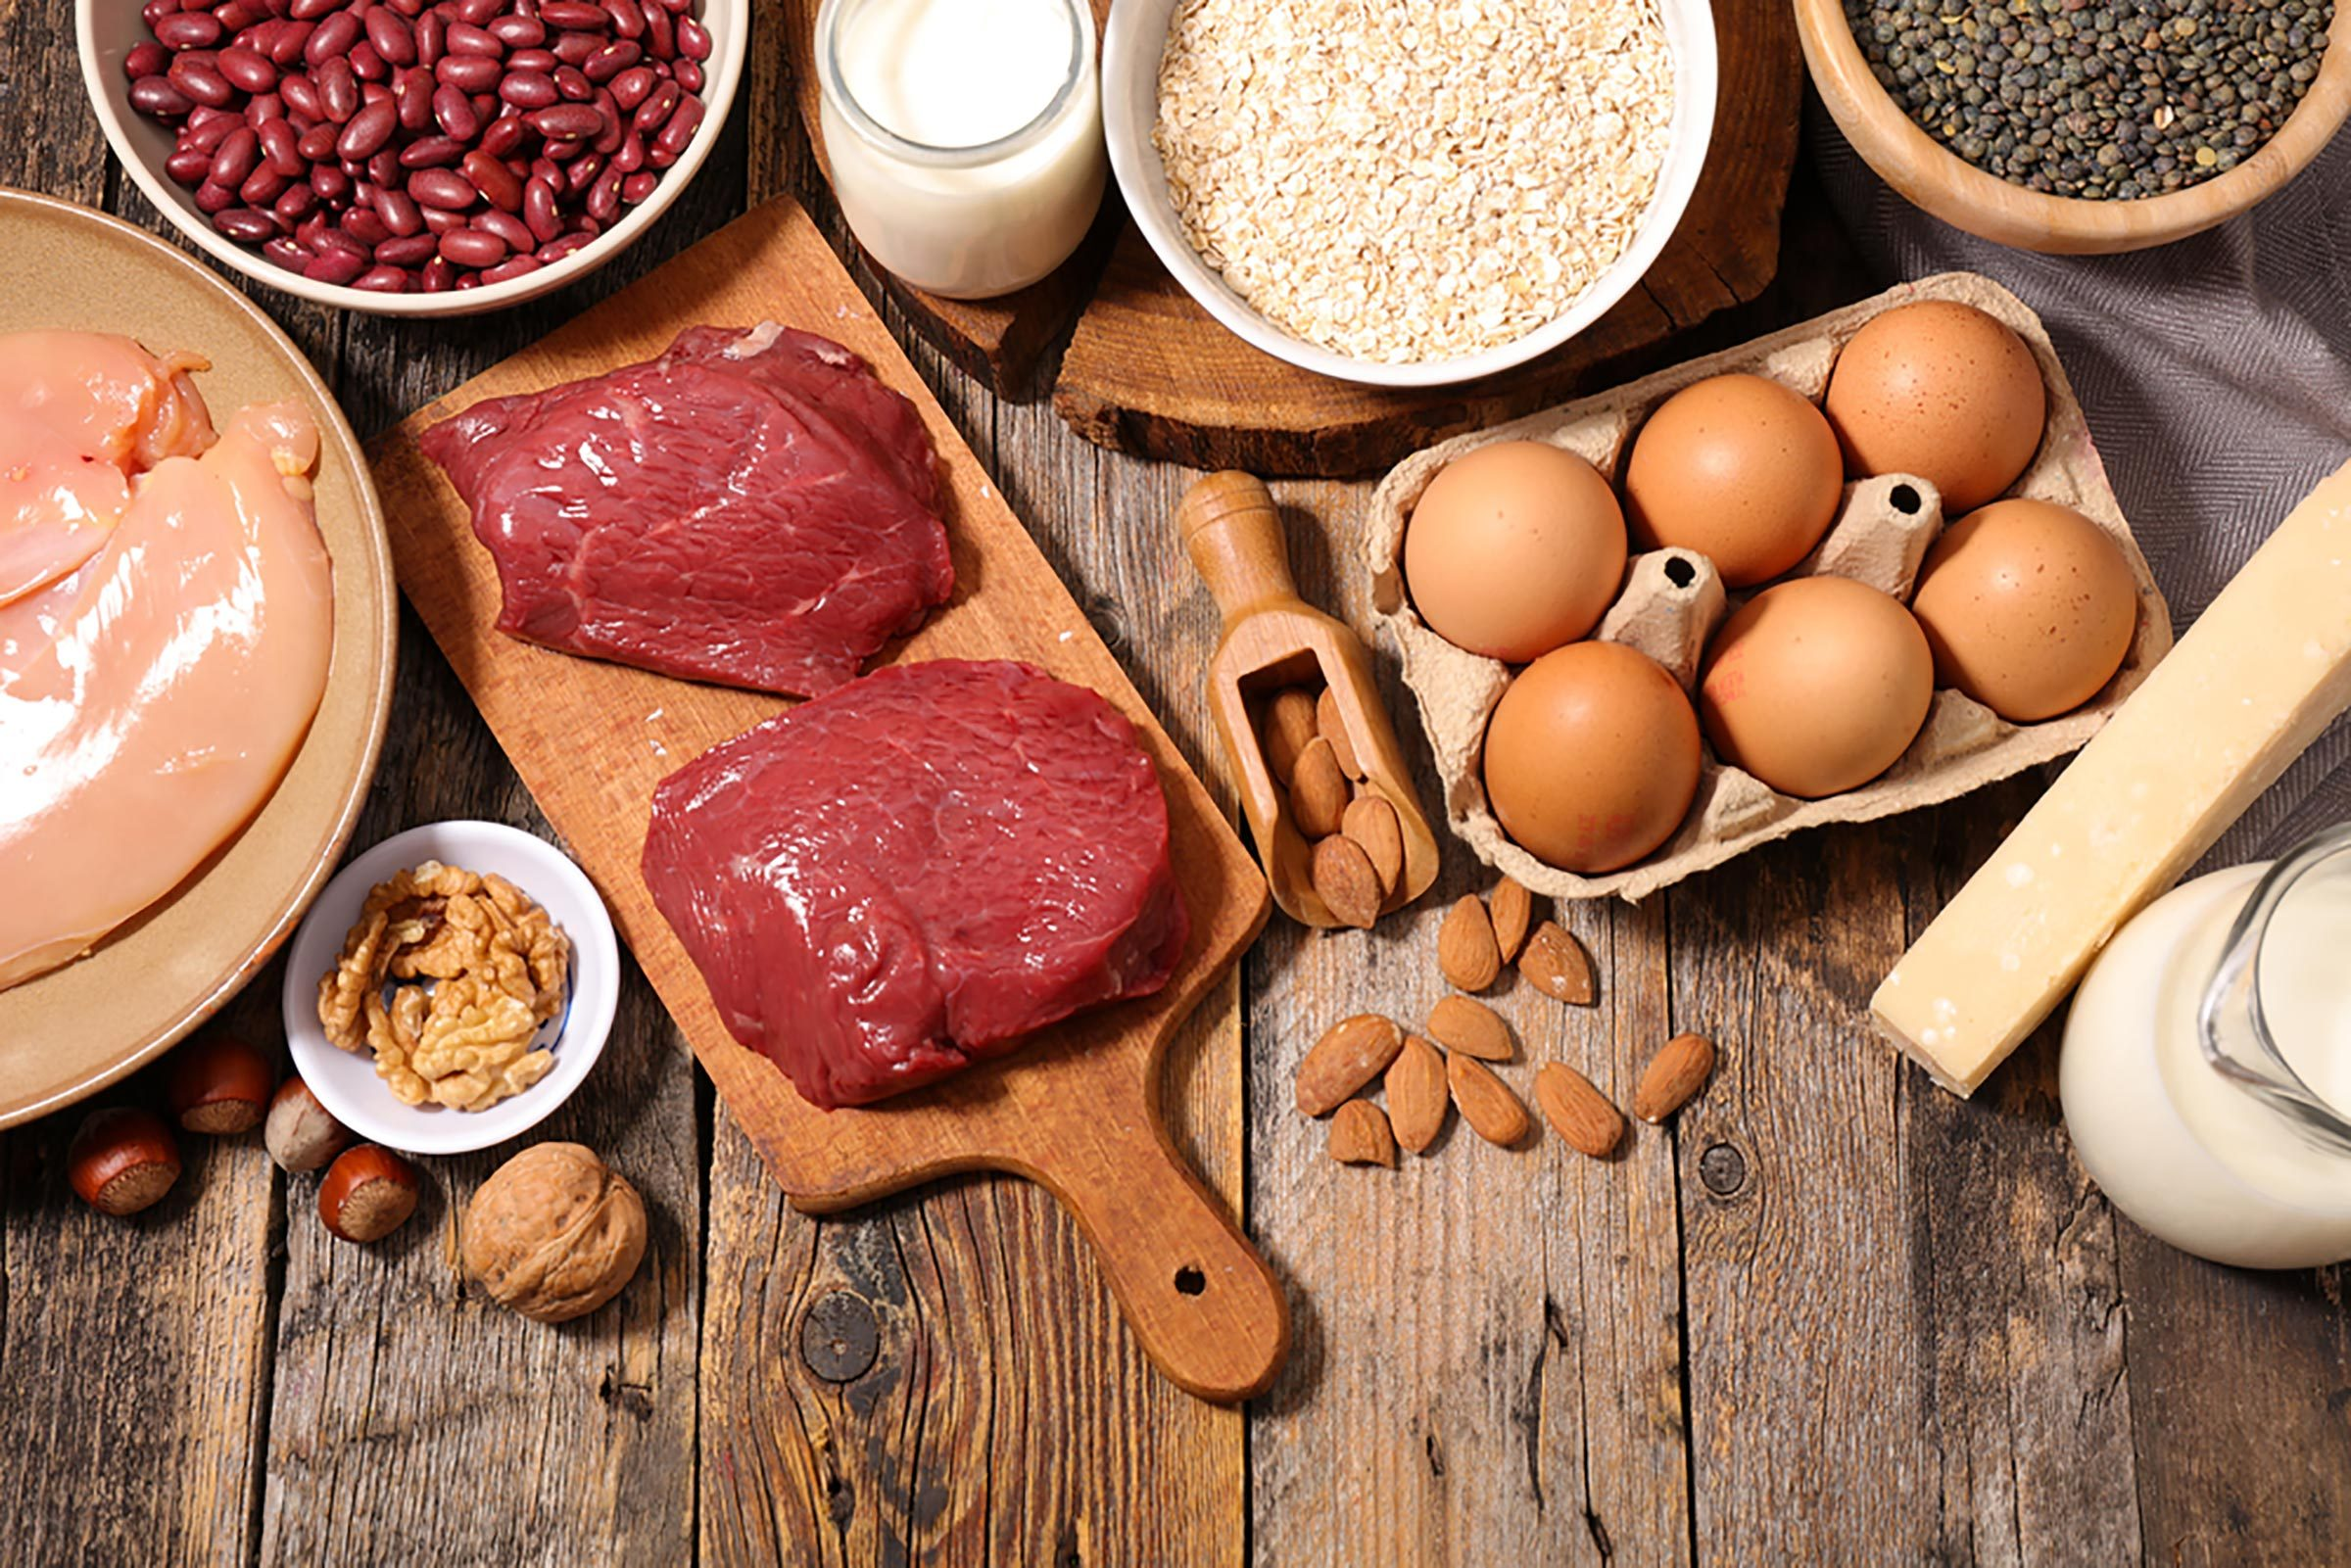 Beef, chicken, eggs, beans, and other protein sources.